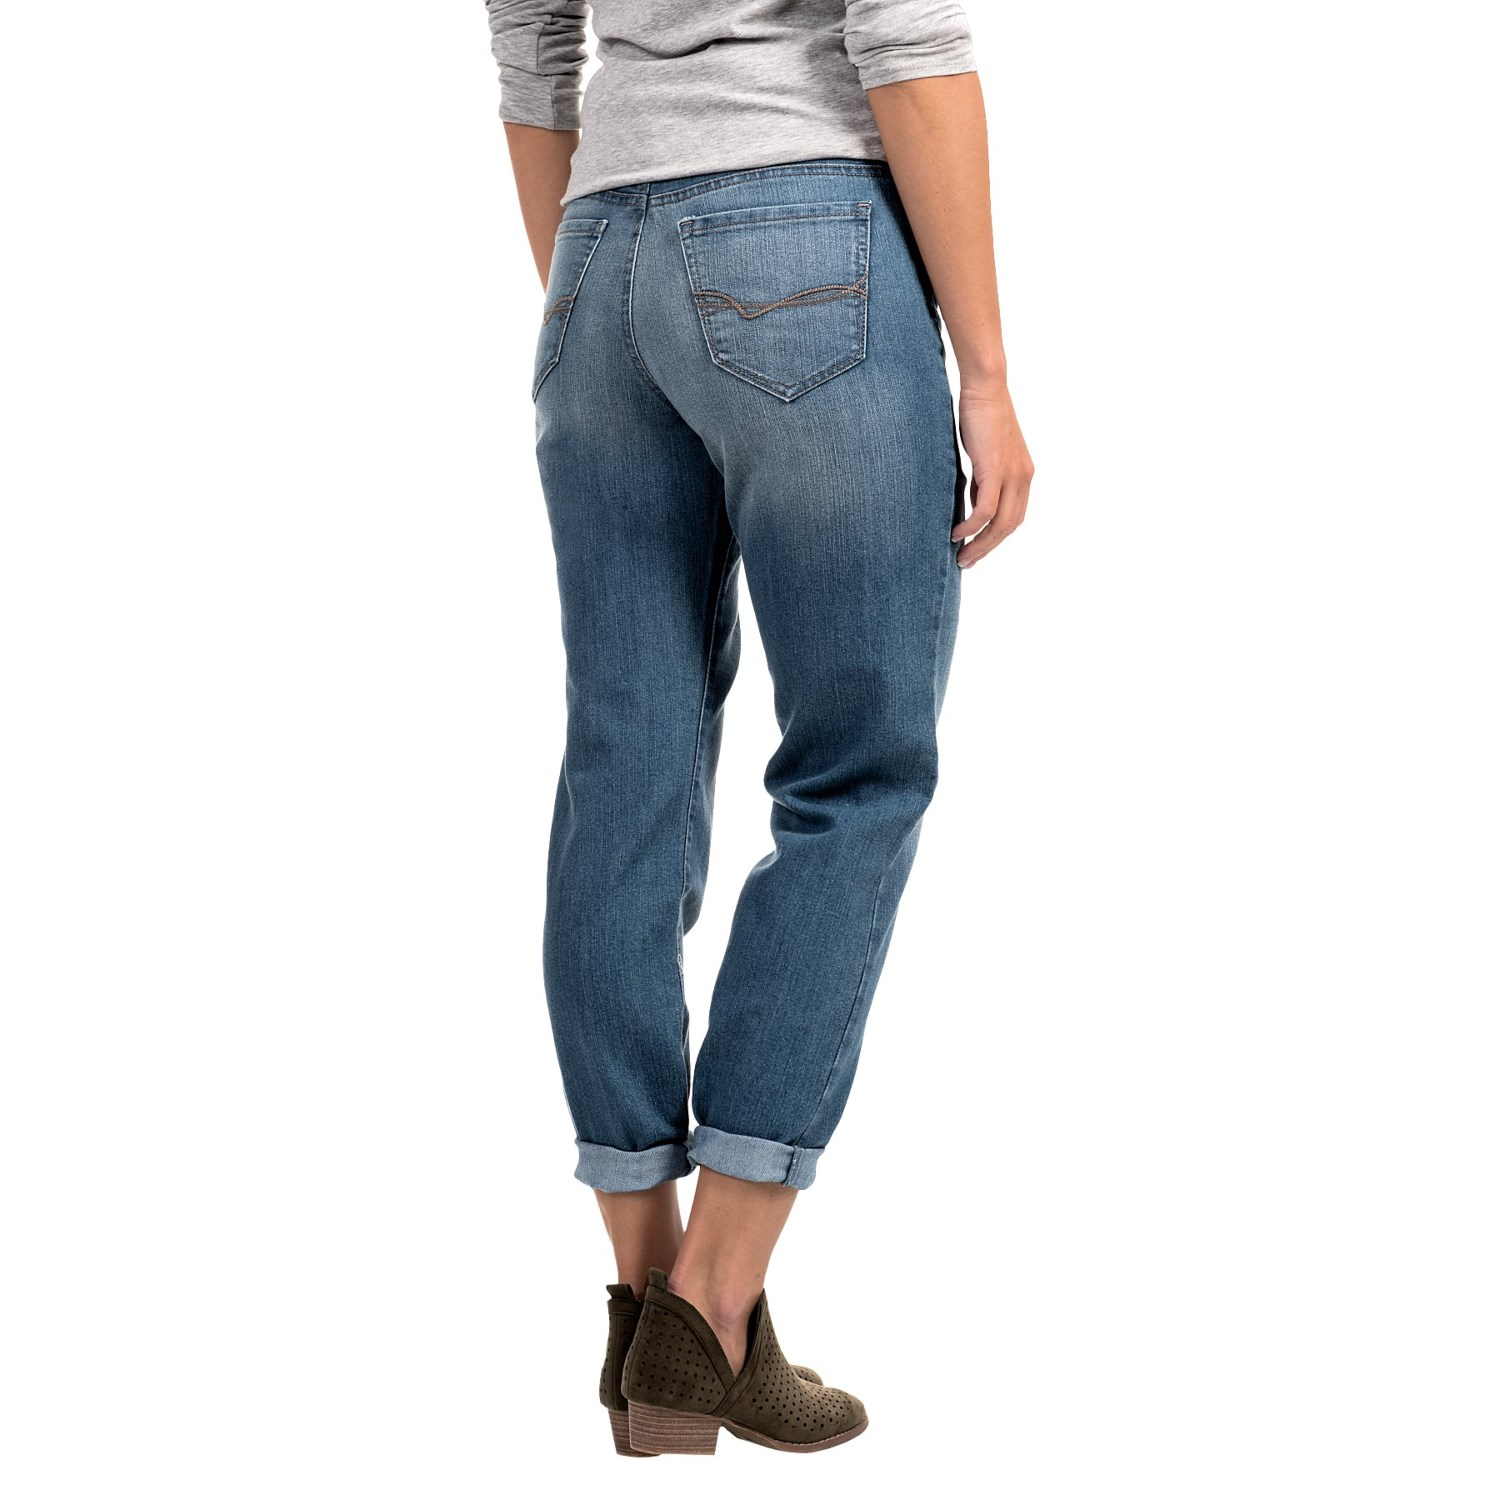 Mandie Perfect Fit Colored Denim Jeans (For Women) - Save 55%